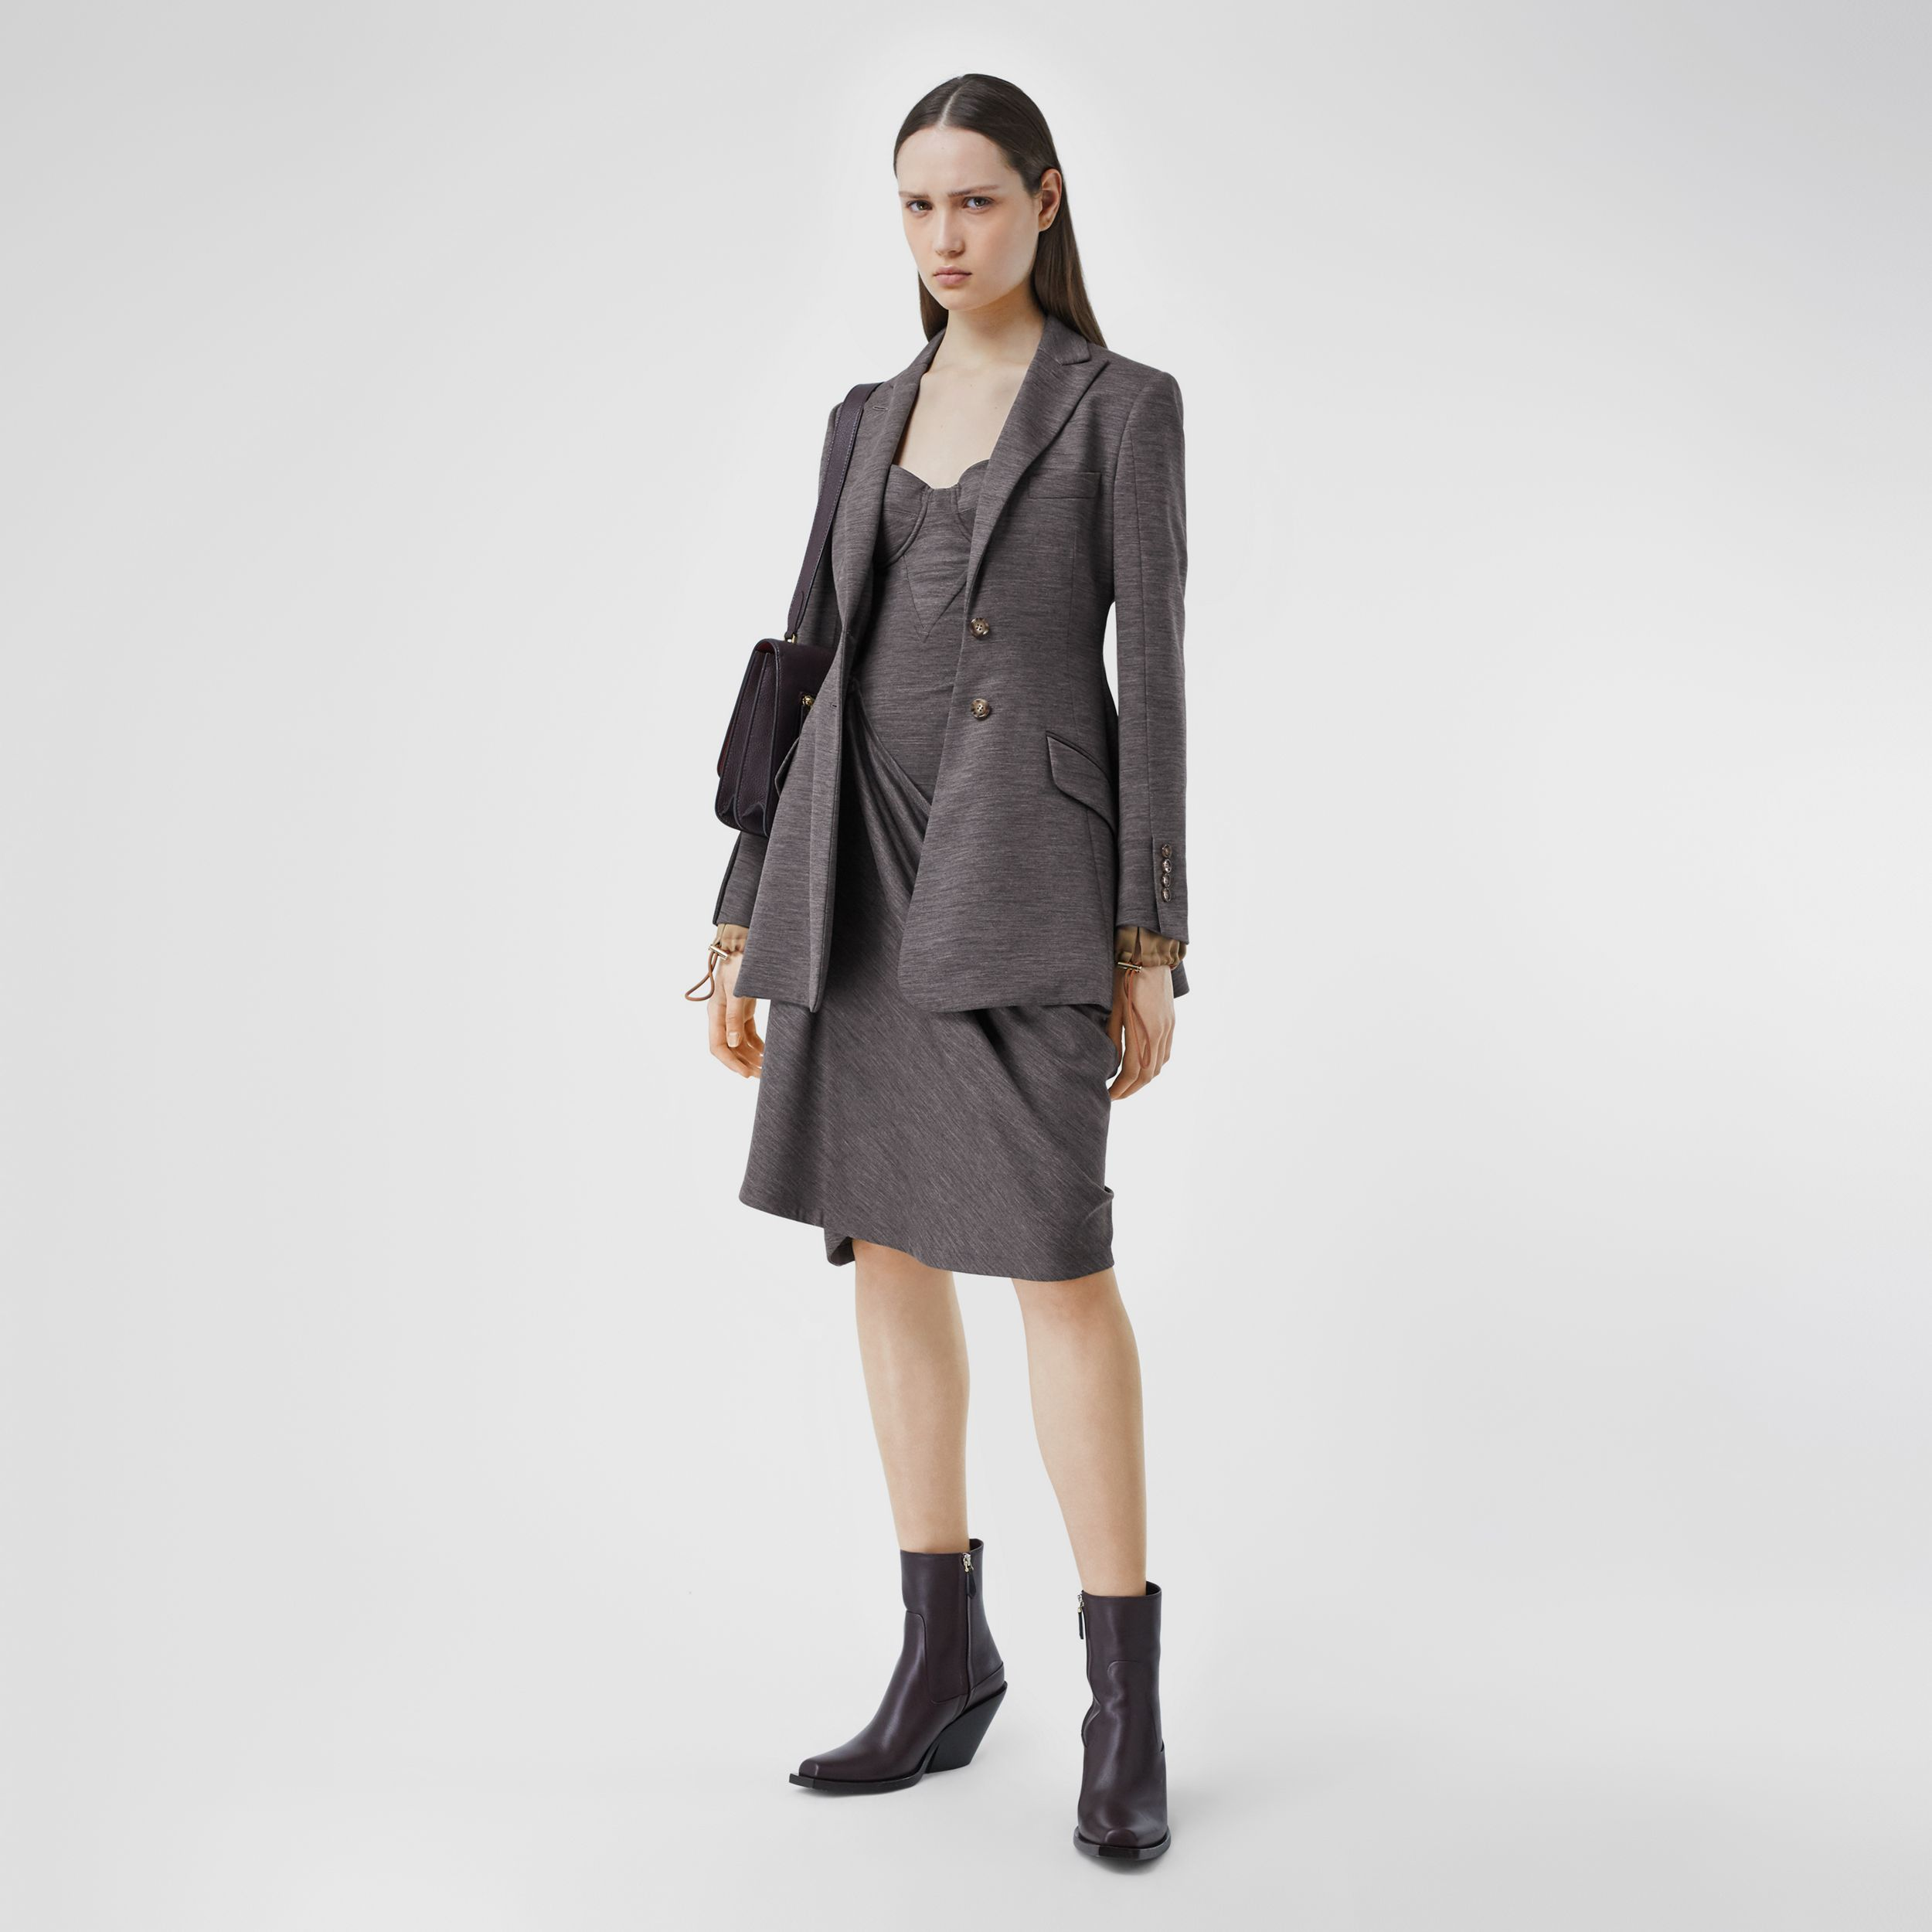 Silk Trim Technical Wool Blazer in Charcoal Grey - Women | Burberry Australia - 1